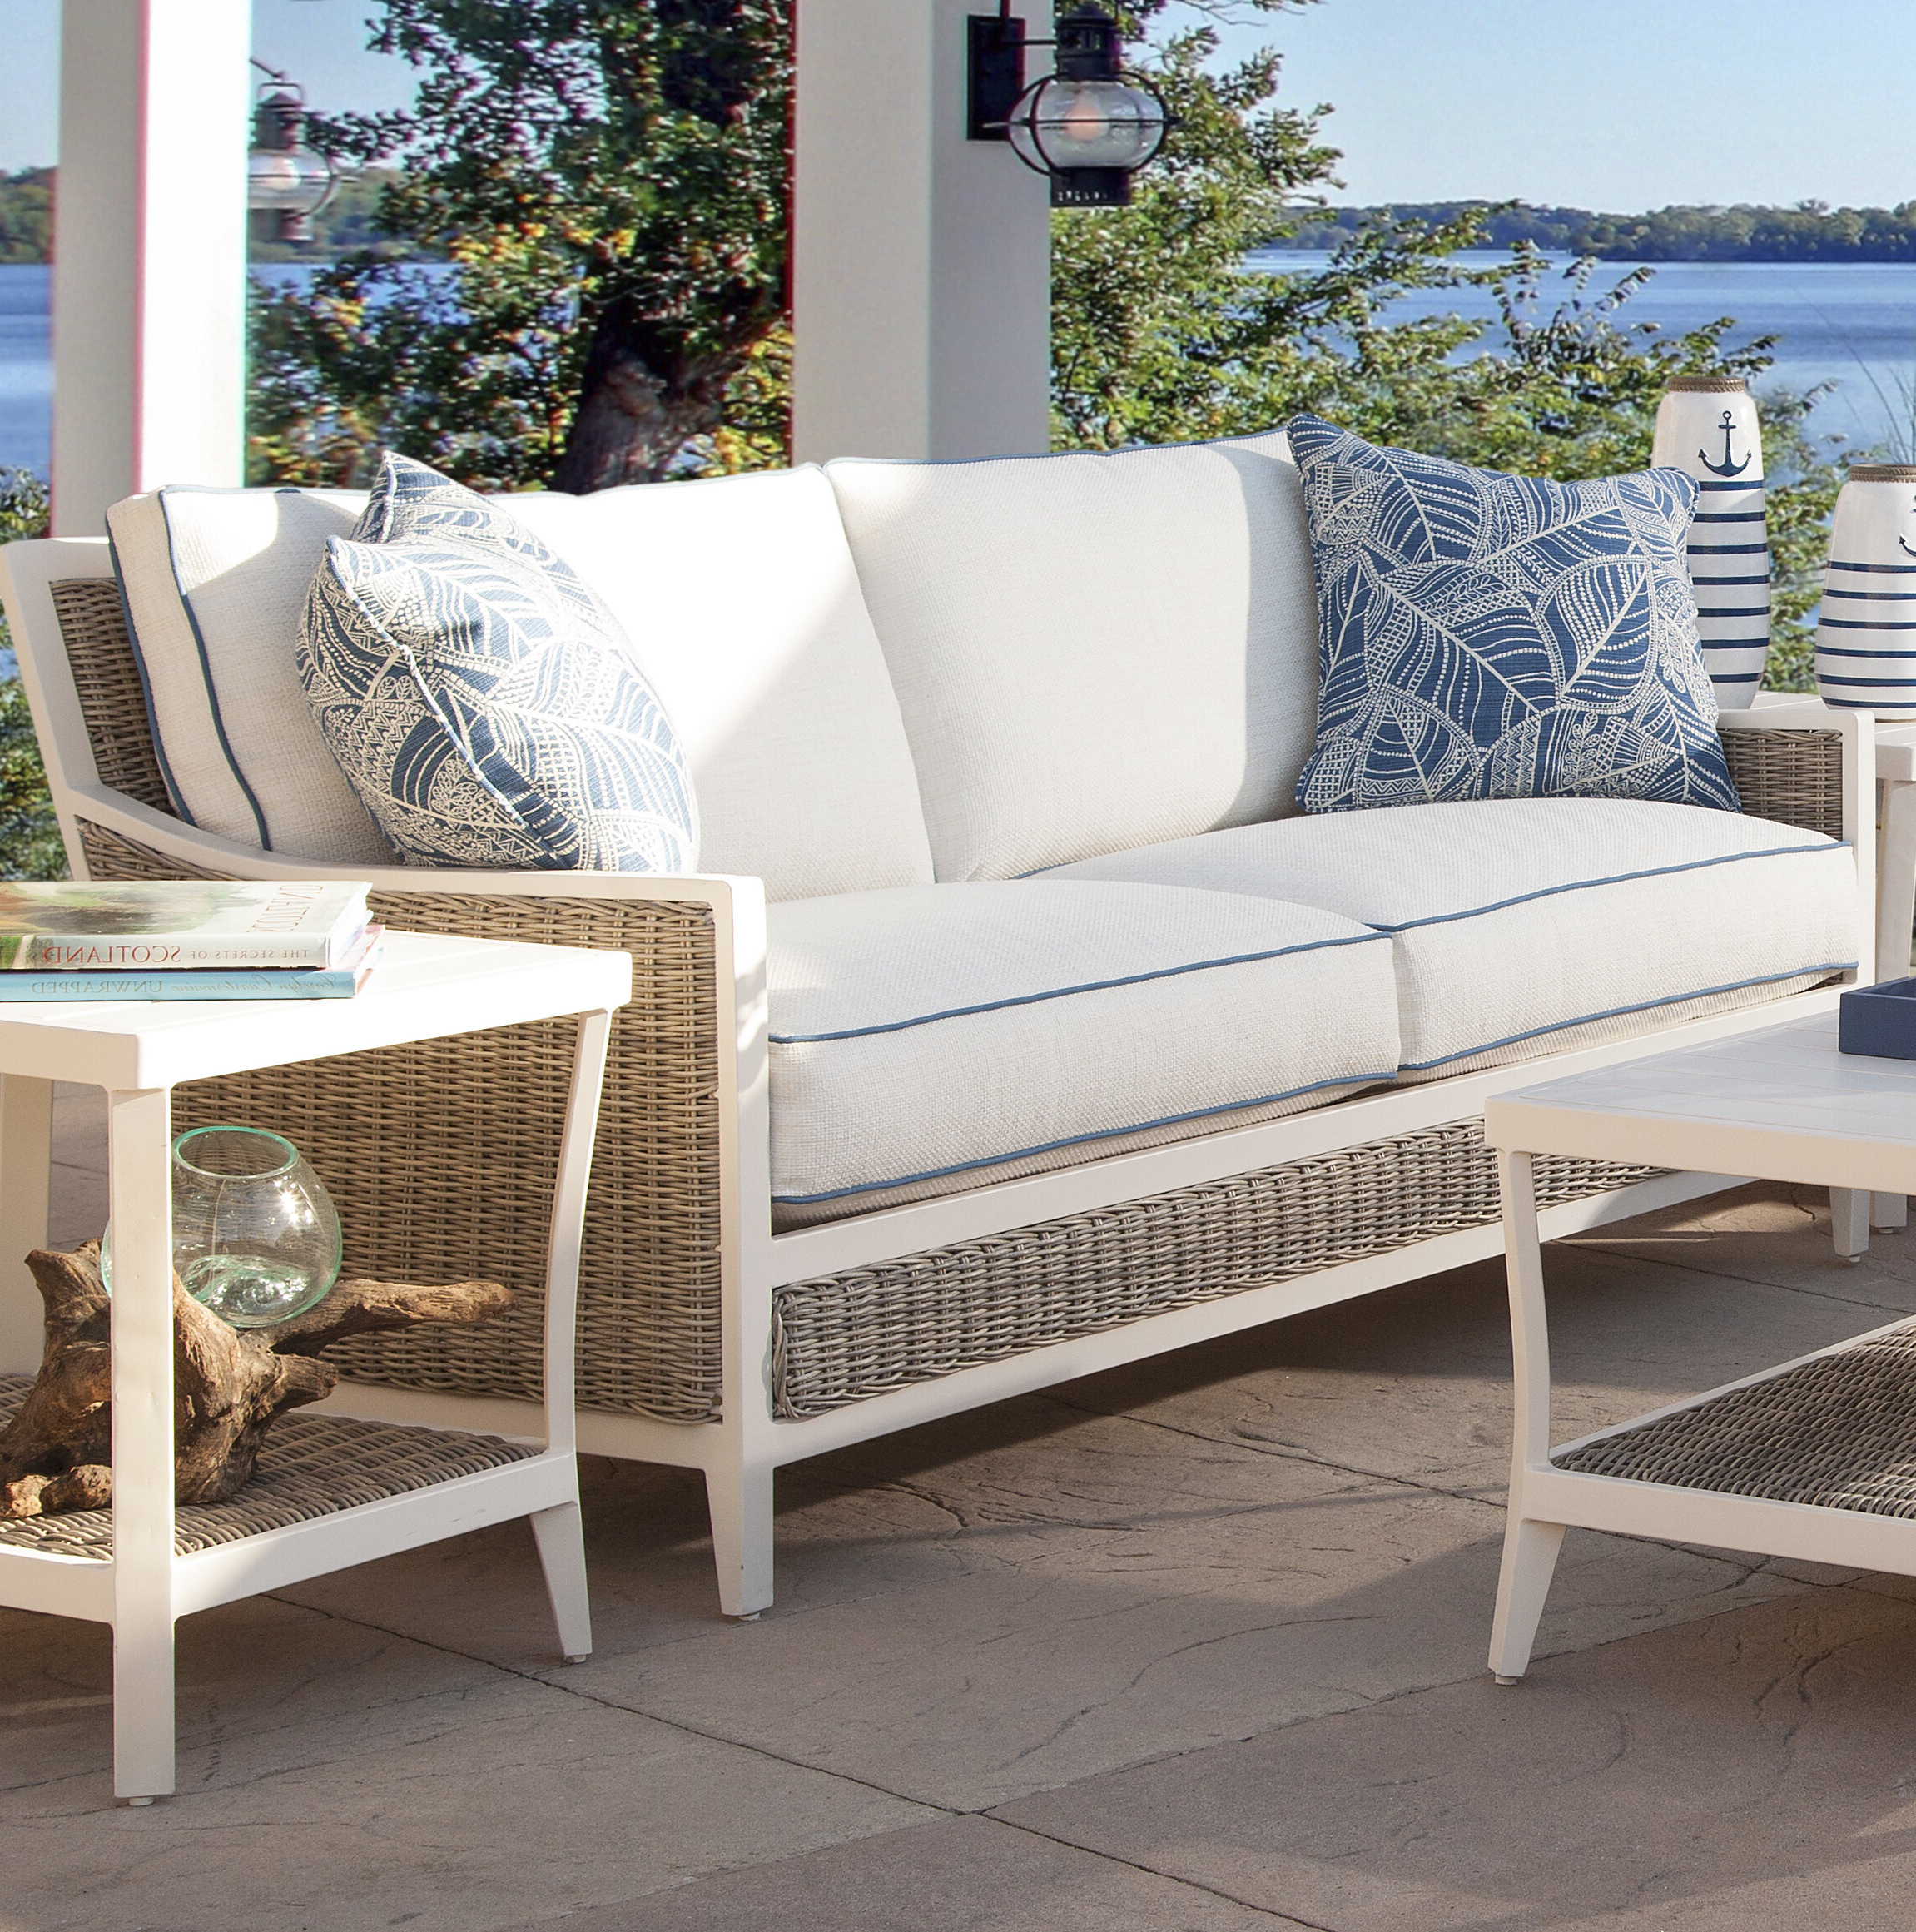 Popular Molly Patio Sofa With Cushions With Regard To Baca Patio Sofas With Cushions (View 20 of 25)